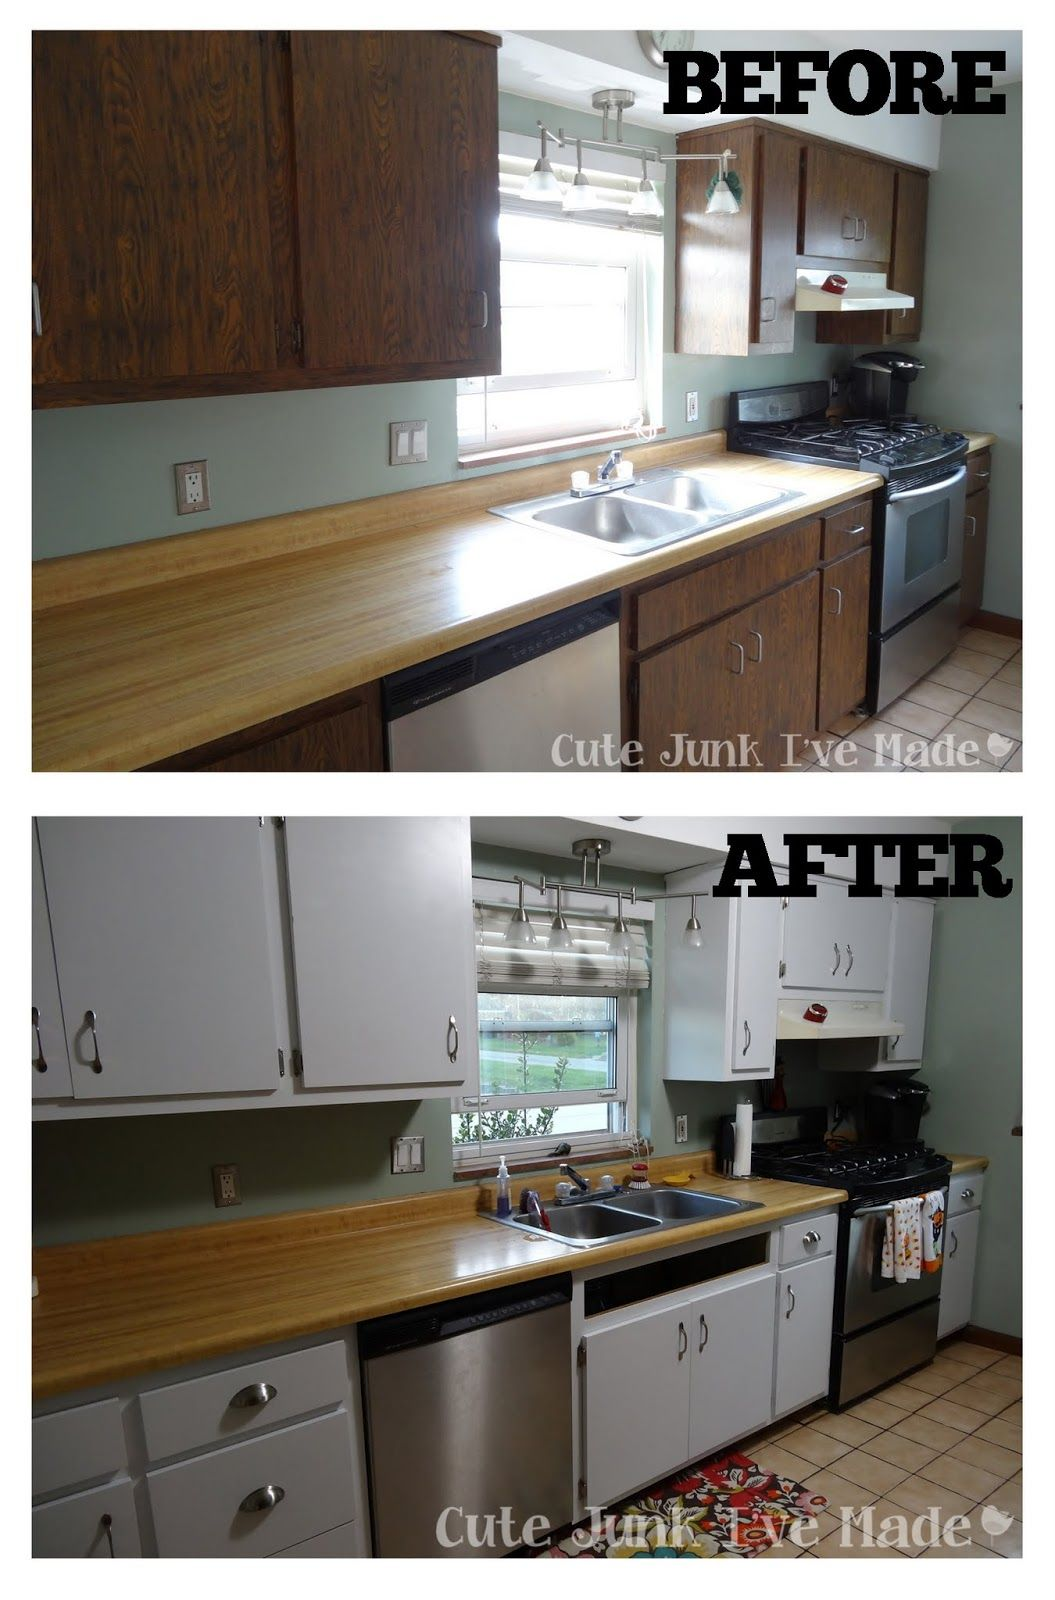 How to Paint Laminate Cabinets - Before & After | Painting ...